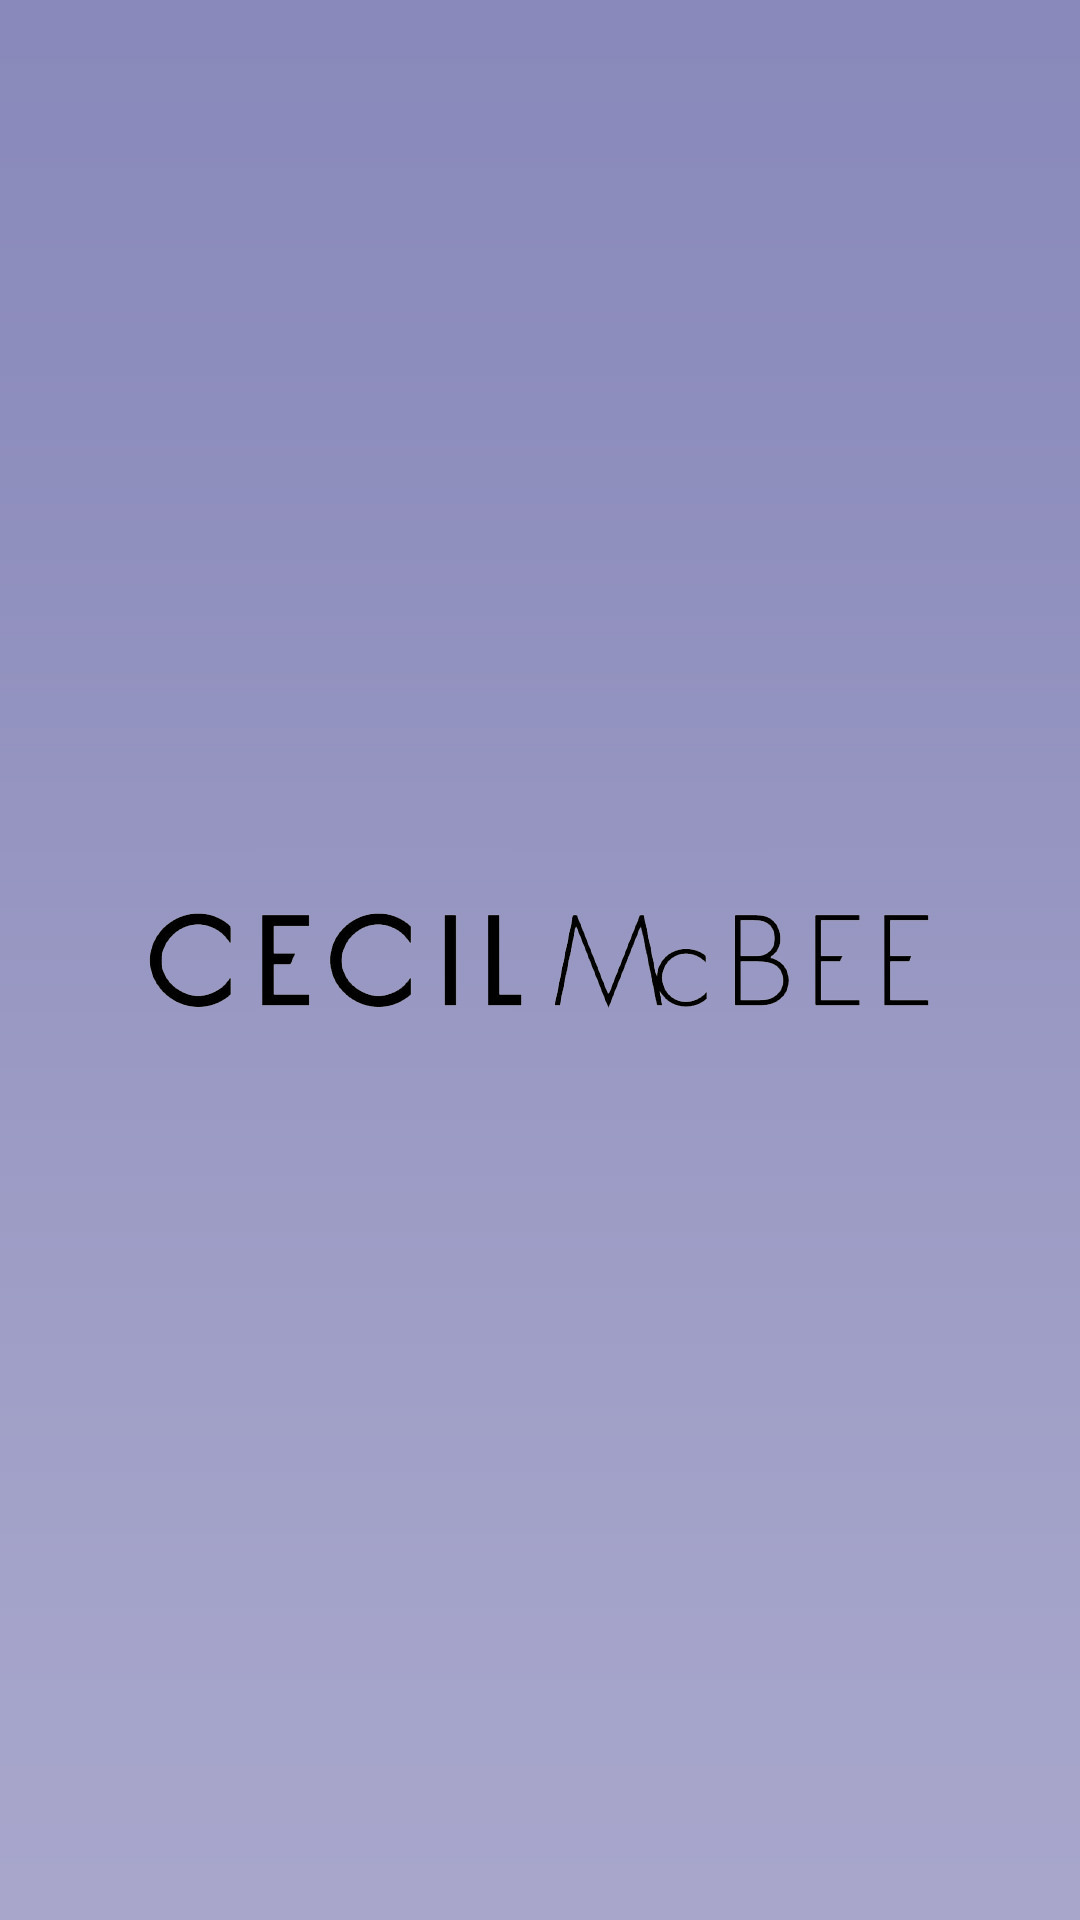 cecil00001 - セシルマクビー[CECIL McBEE]の高画質スマホ壁紙23枚 [iPhone&Androidに対応]